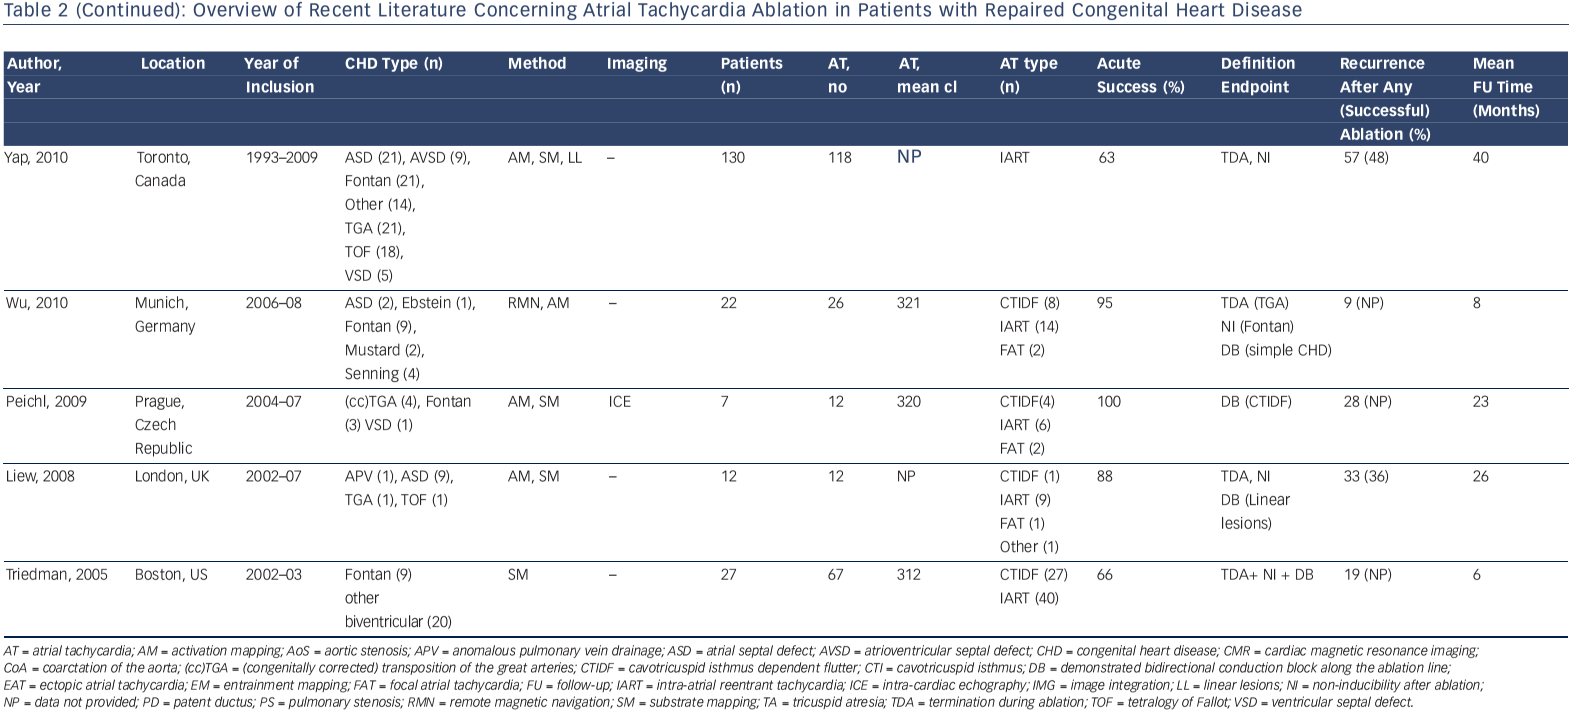 Table 2 (Continued): Overview Of Recent Literature Concerning Atrial Tachycardia Ablation In Patients With Repaired Congenital Heart Disease